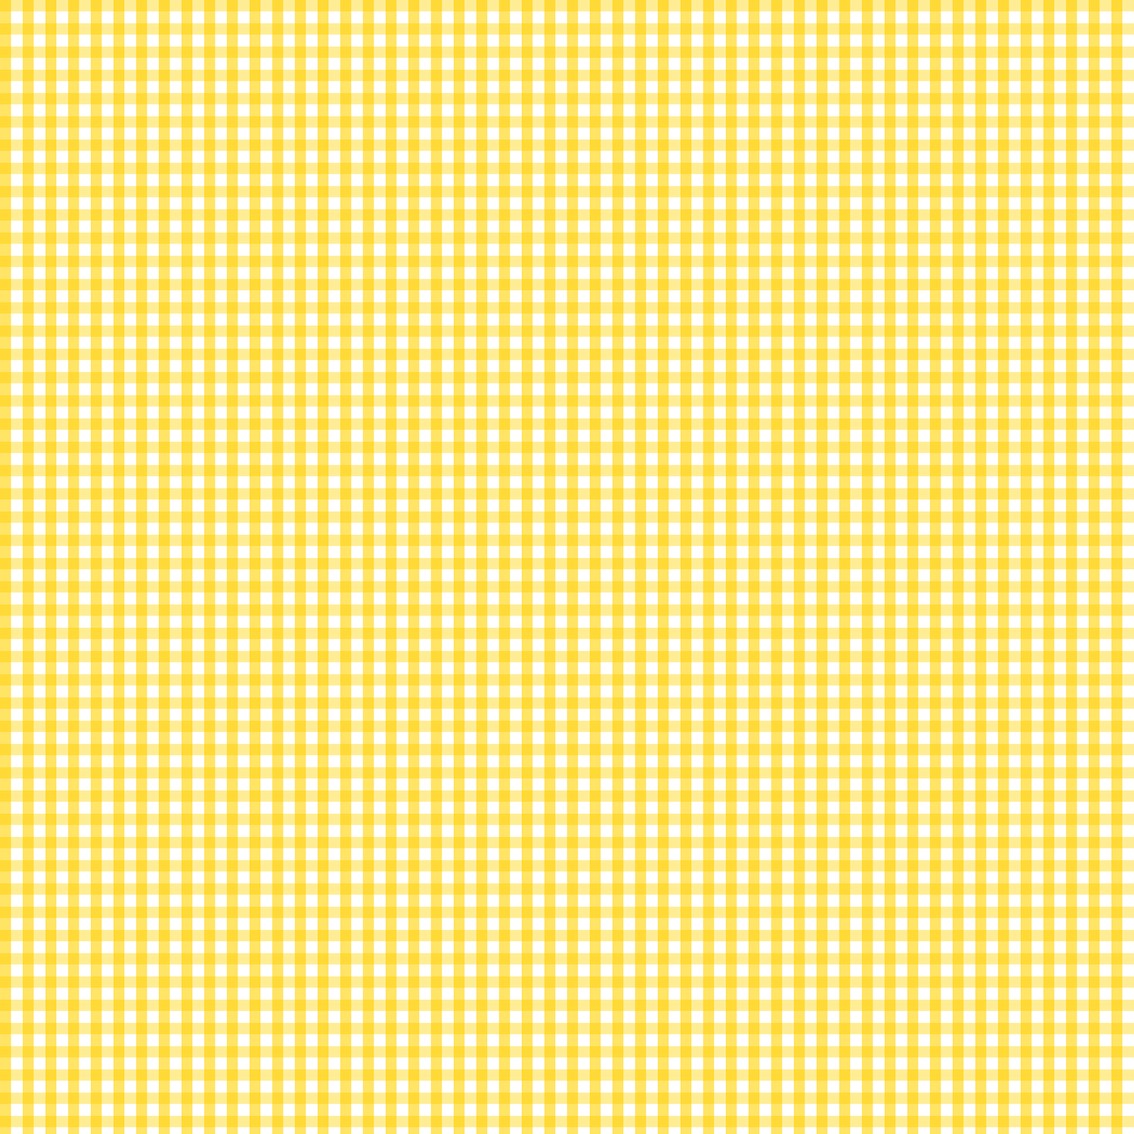 Checkered Scrapbook Paper Checkered Scrapbook Paper